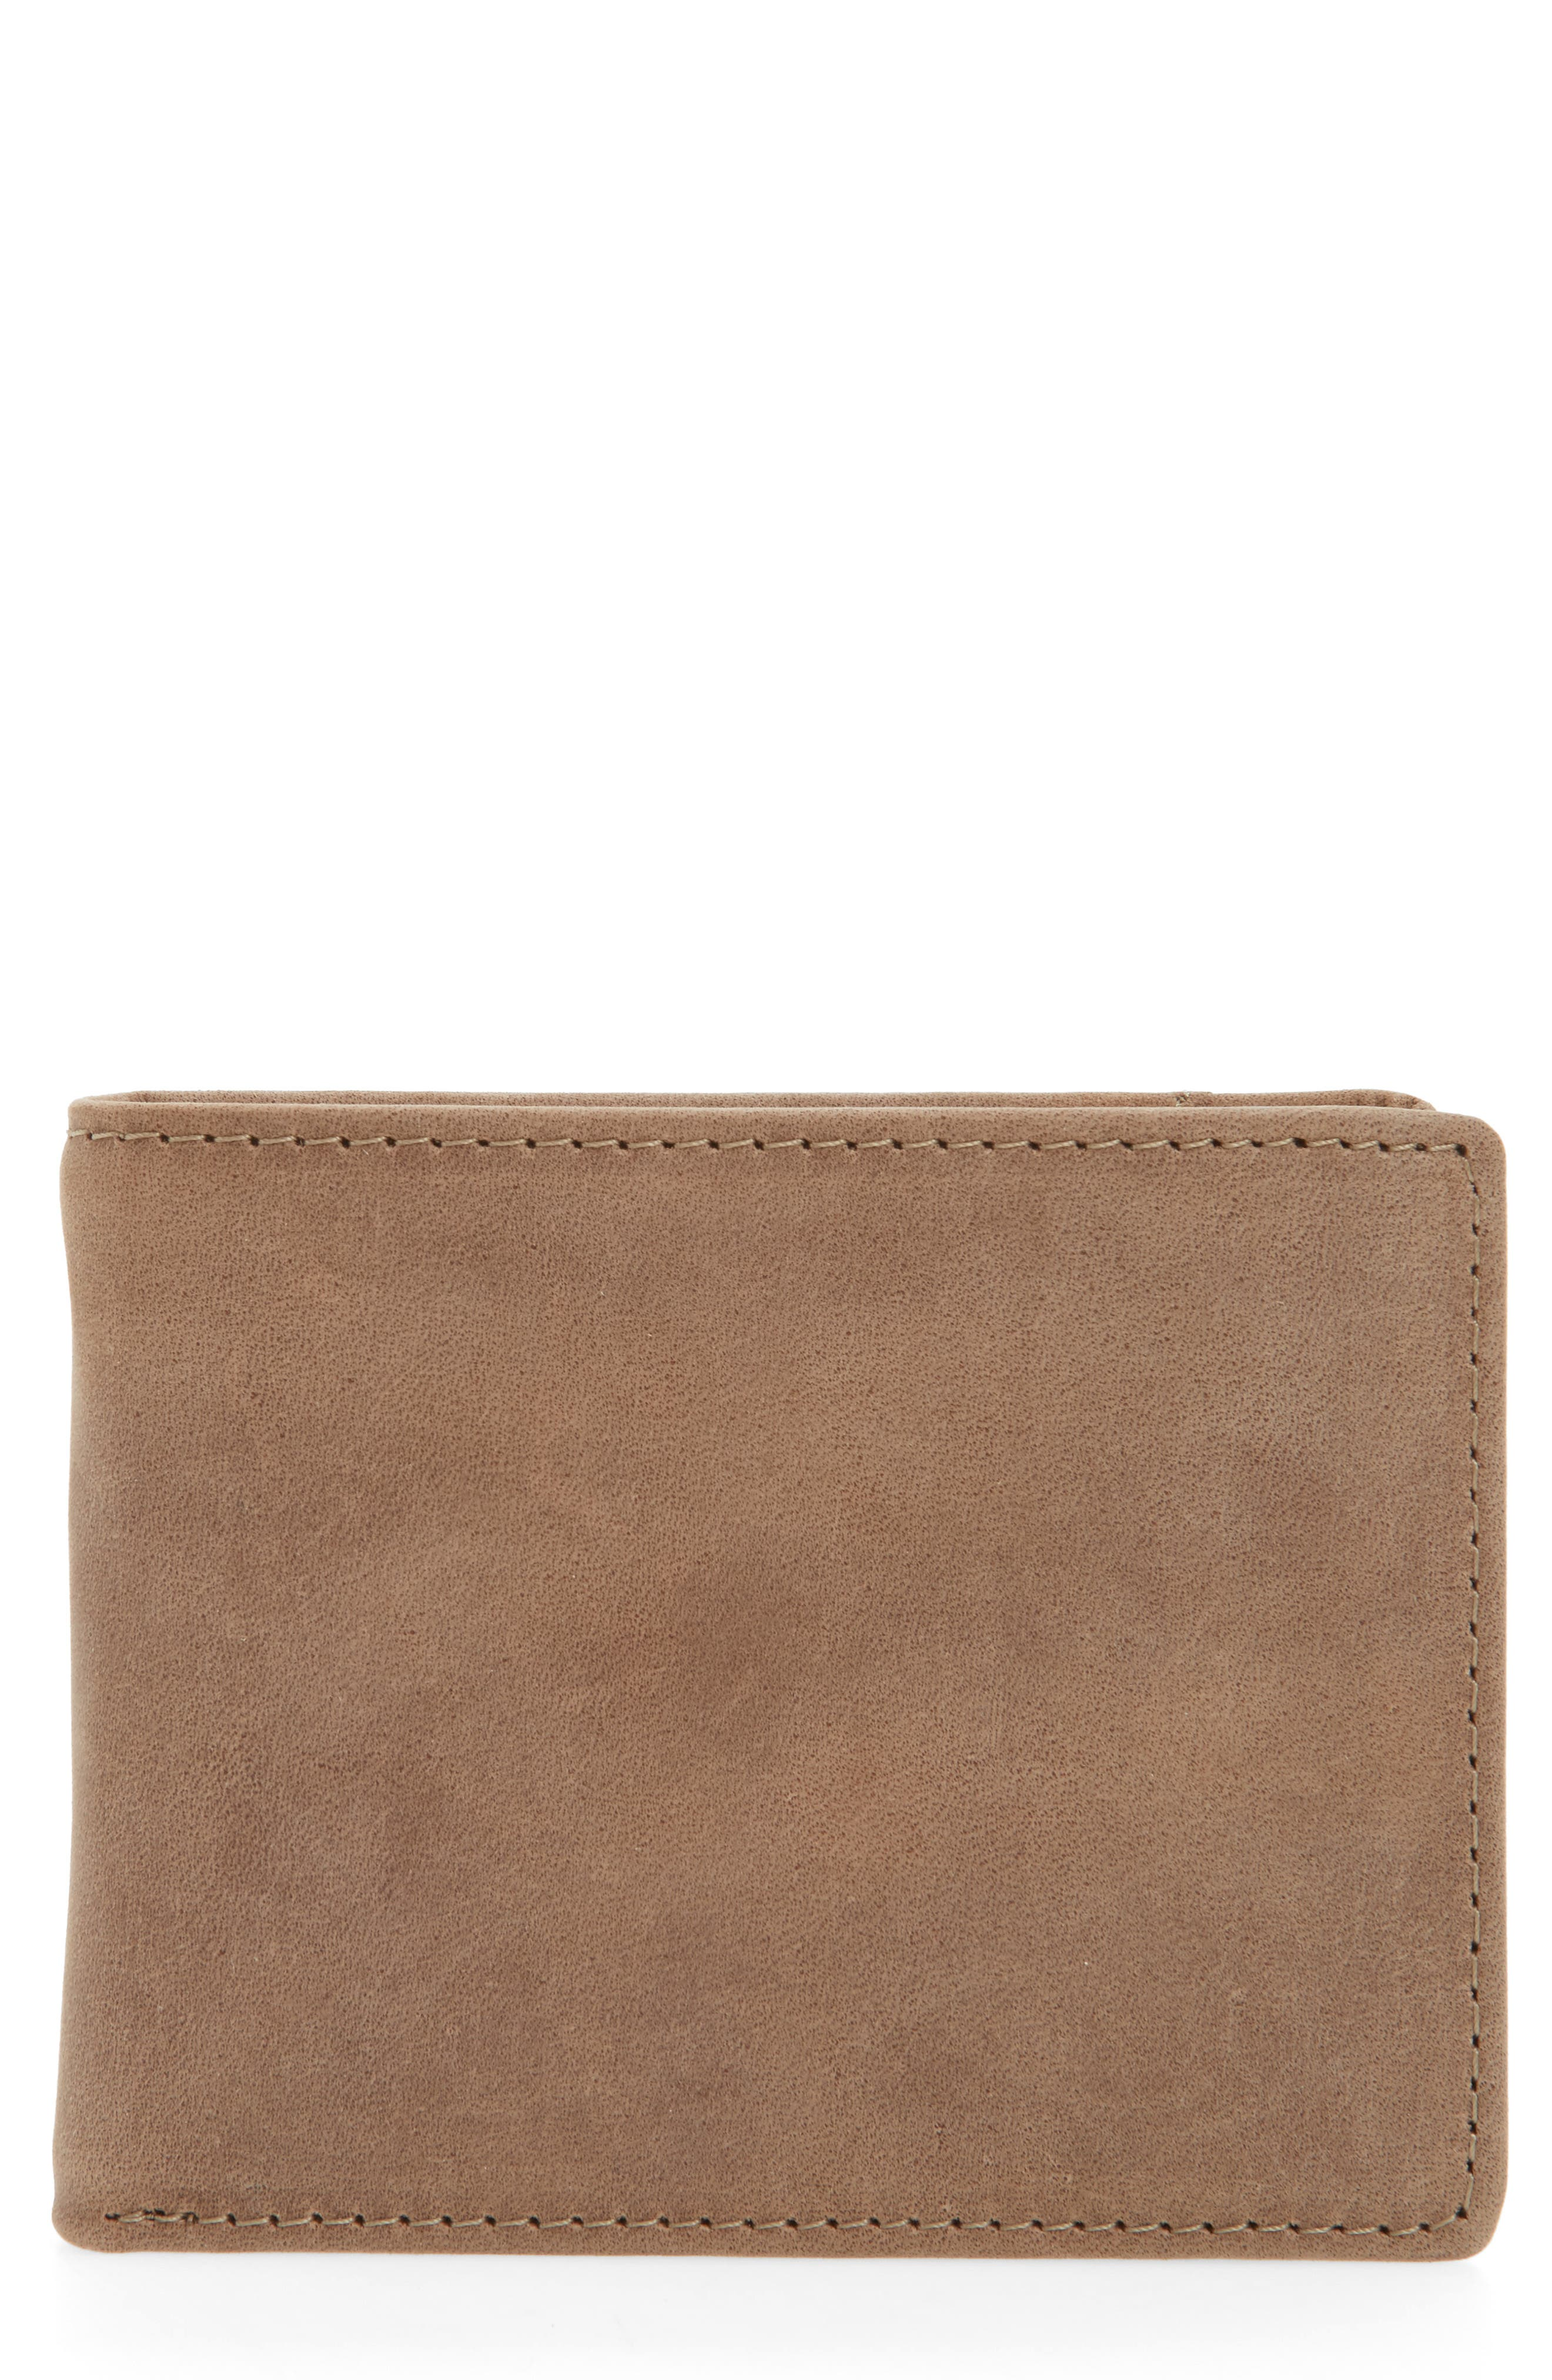 Upton Leather Wallet,                         Main,                         color,